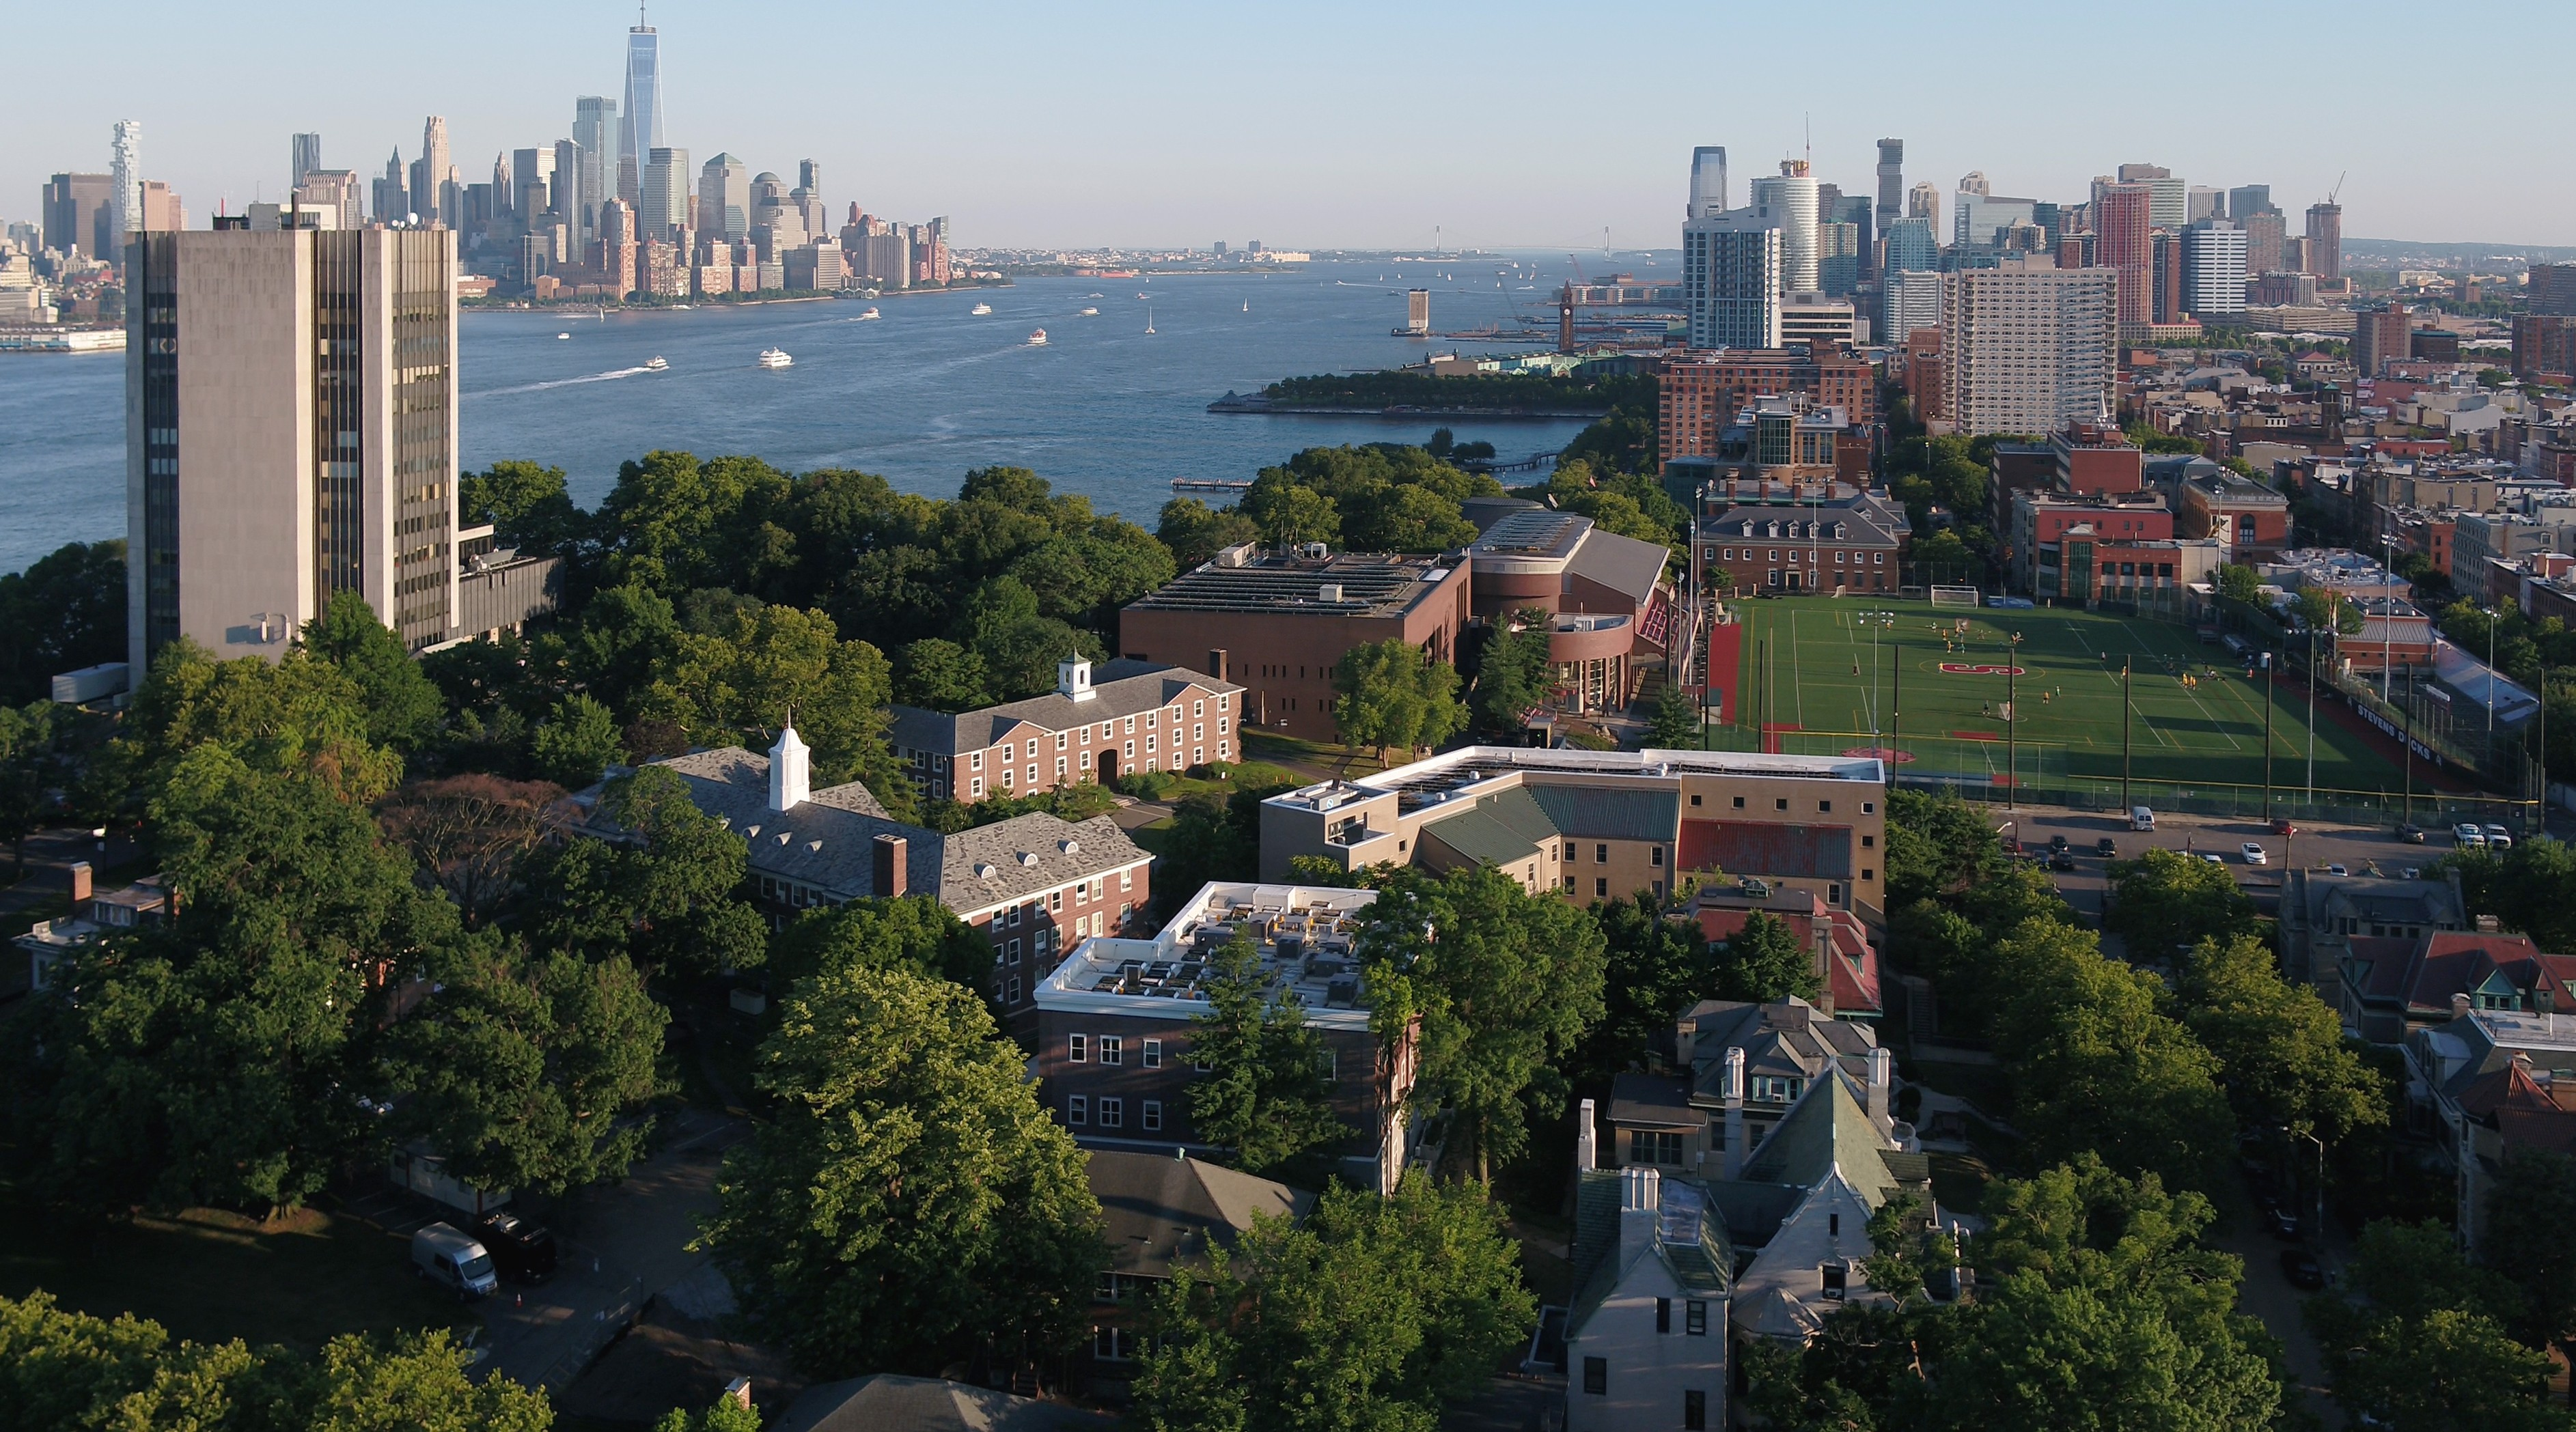 Stevens Institute Of Technology Ezgenerator Switch Wiring Diagram A Premier Private Research University Just Minutes From New York City With An Incredible View And Exceptional Access To Opportunity